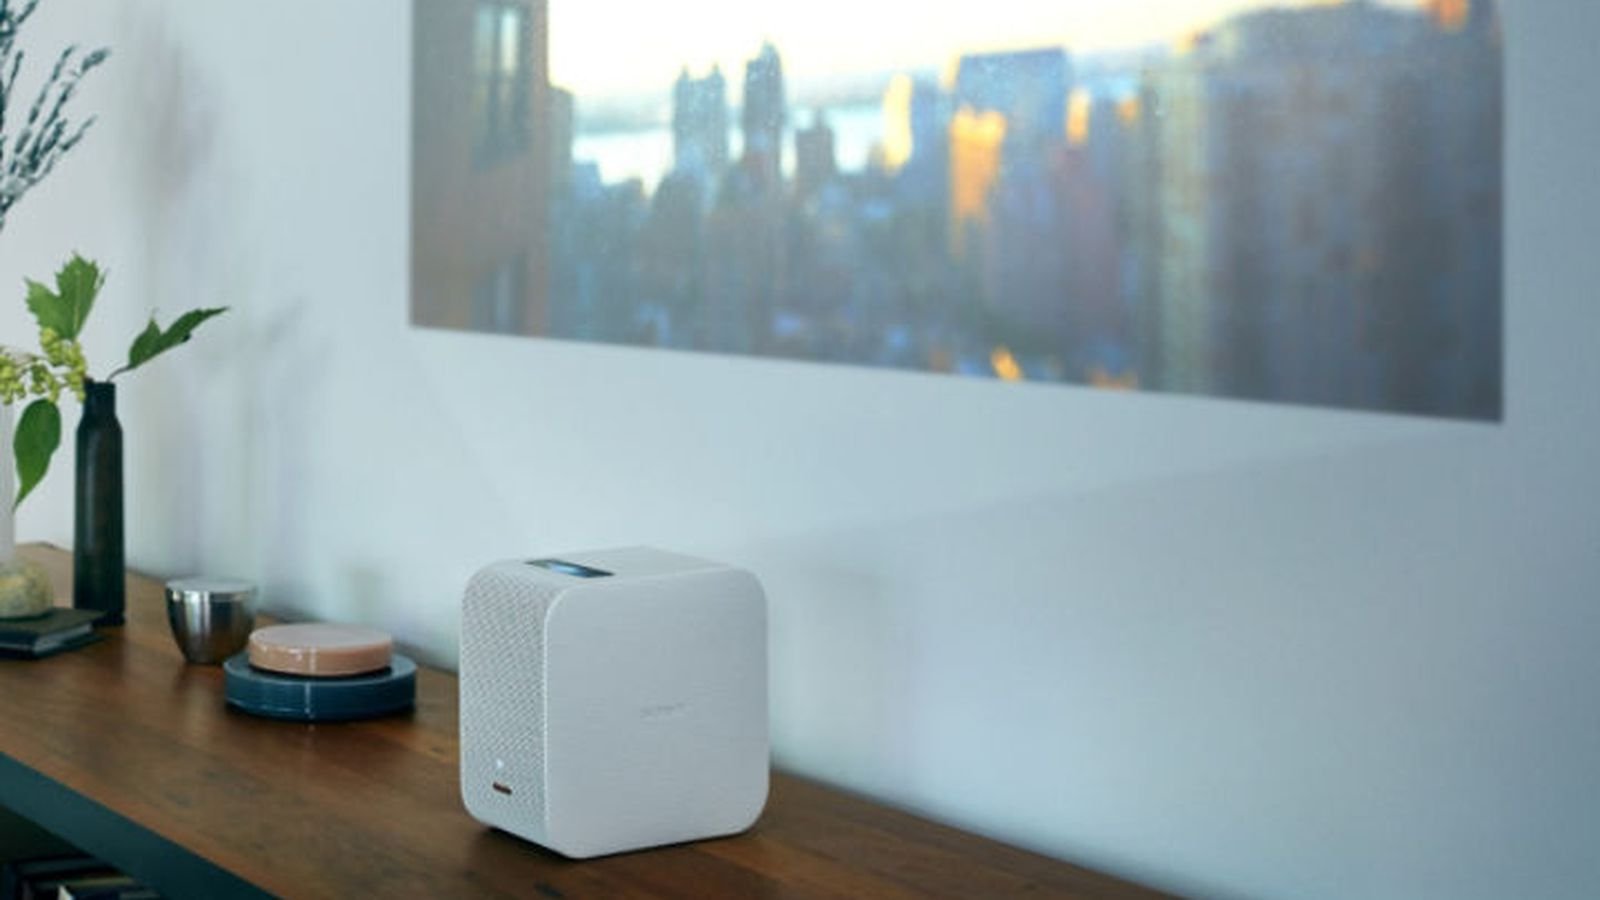 Sony S Portable Ultra Short Throw Projector Will Turn Any